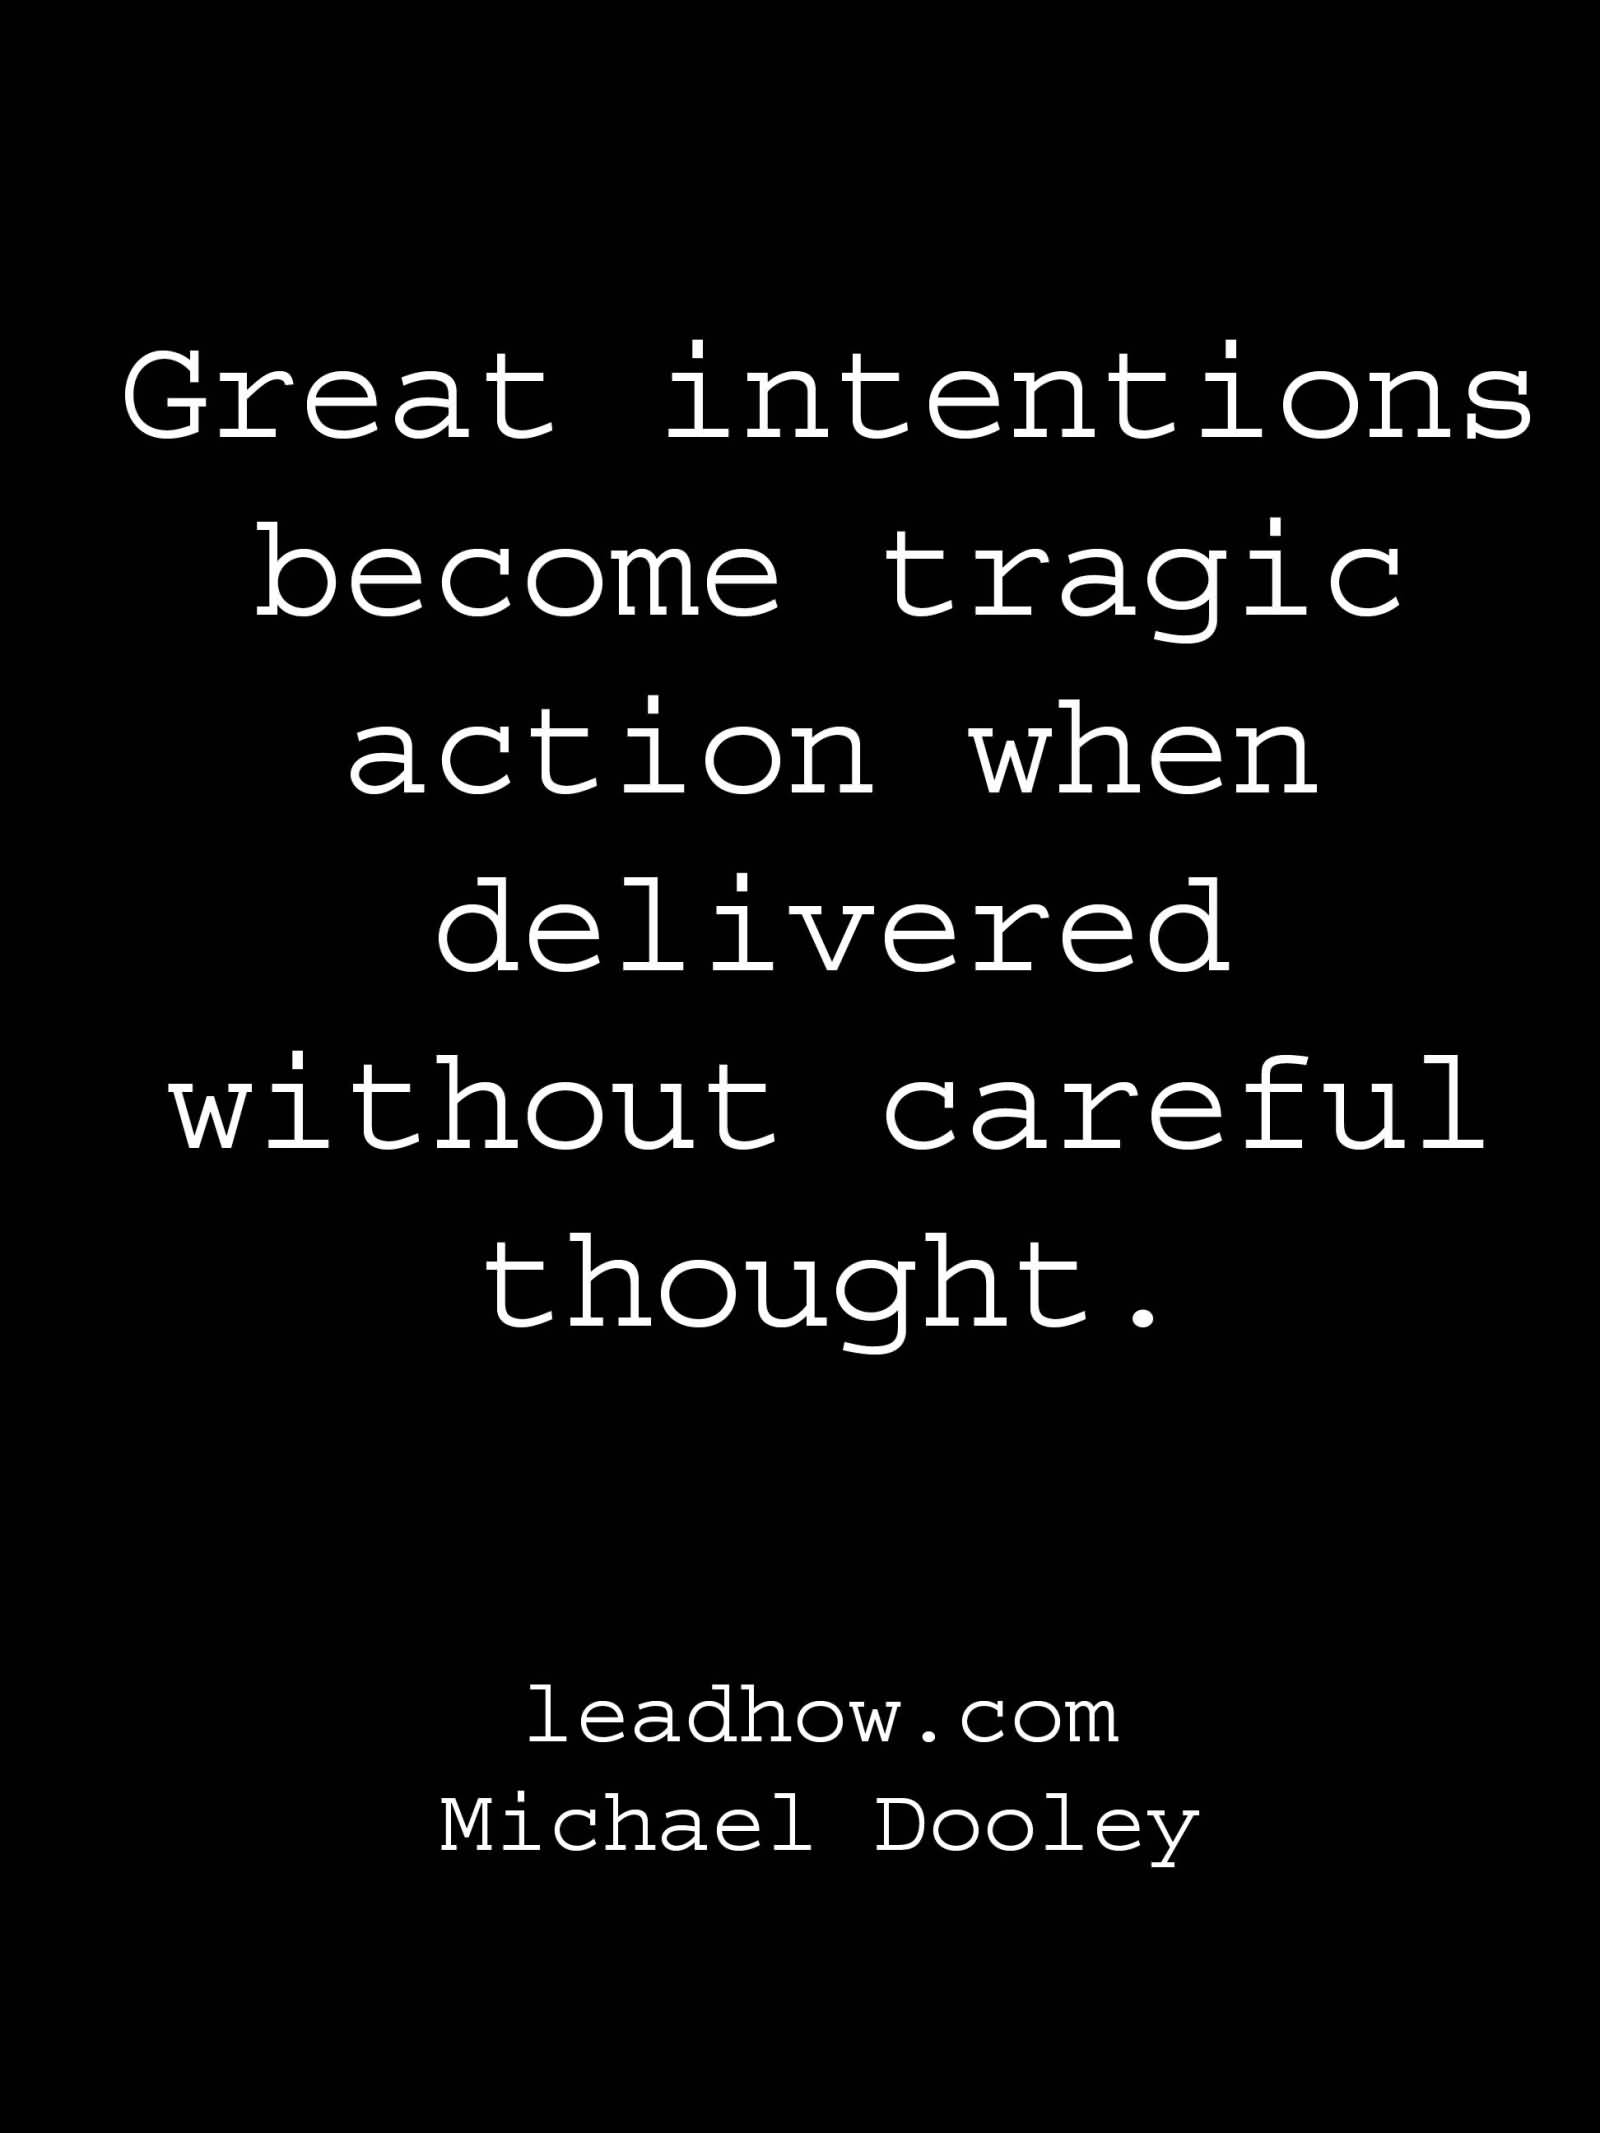 Great intentions become tragic action when delivered without careful thought. Michael Dooley